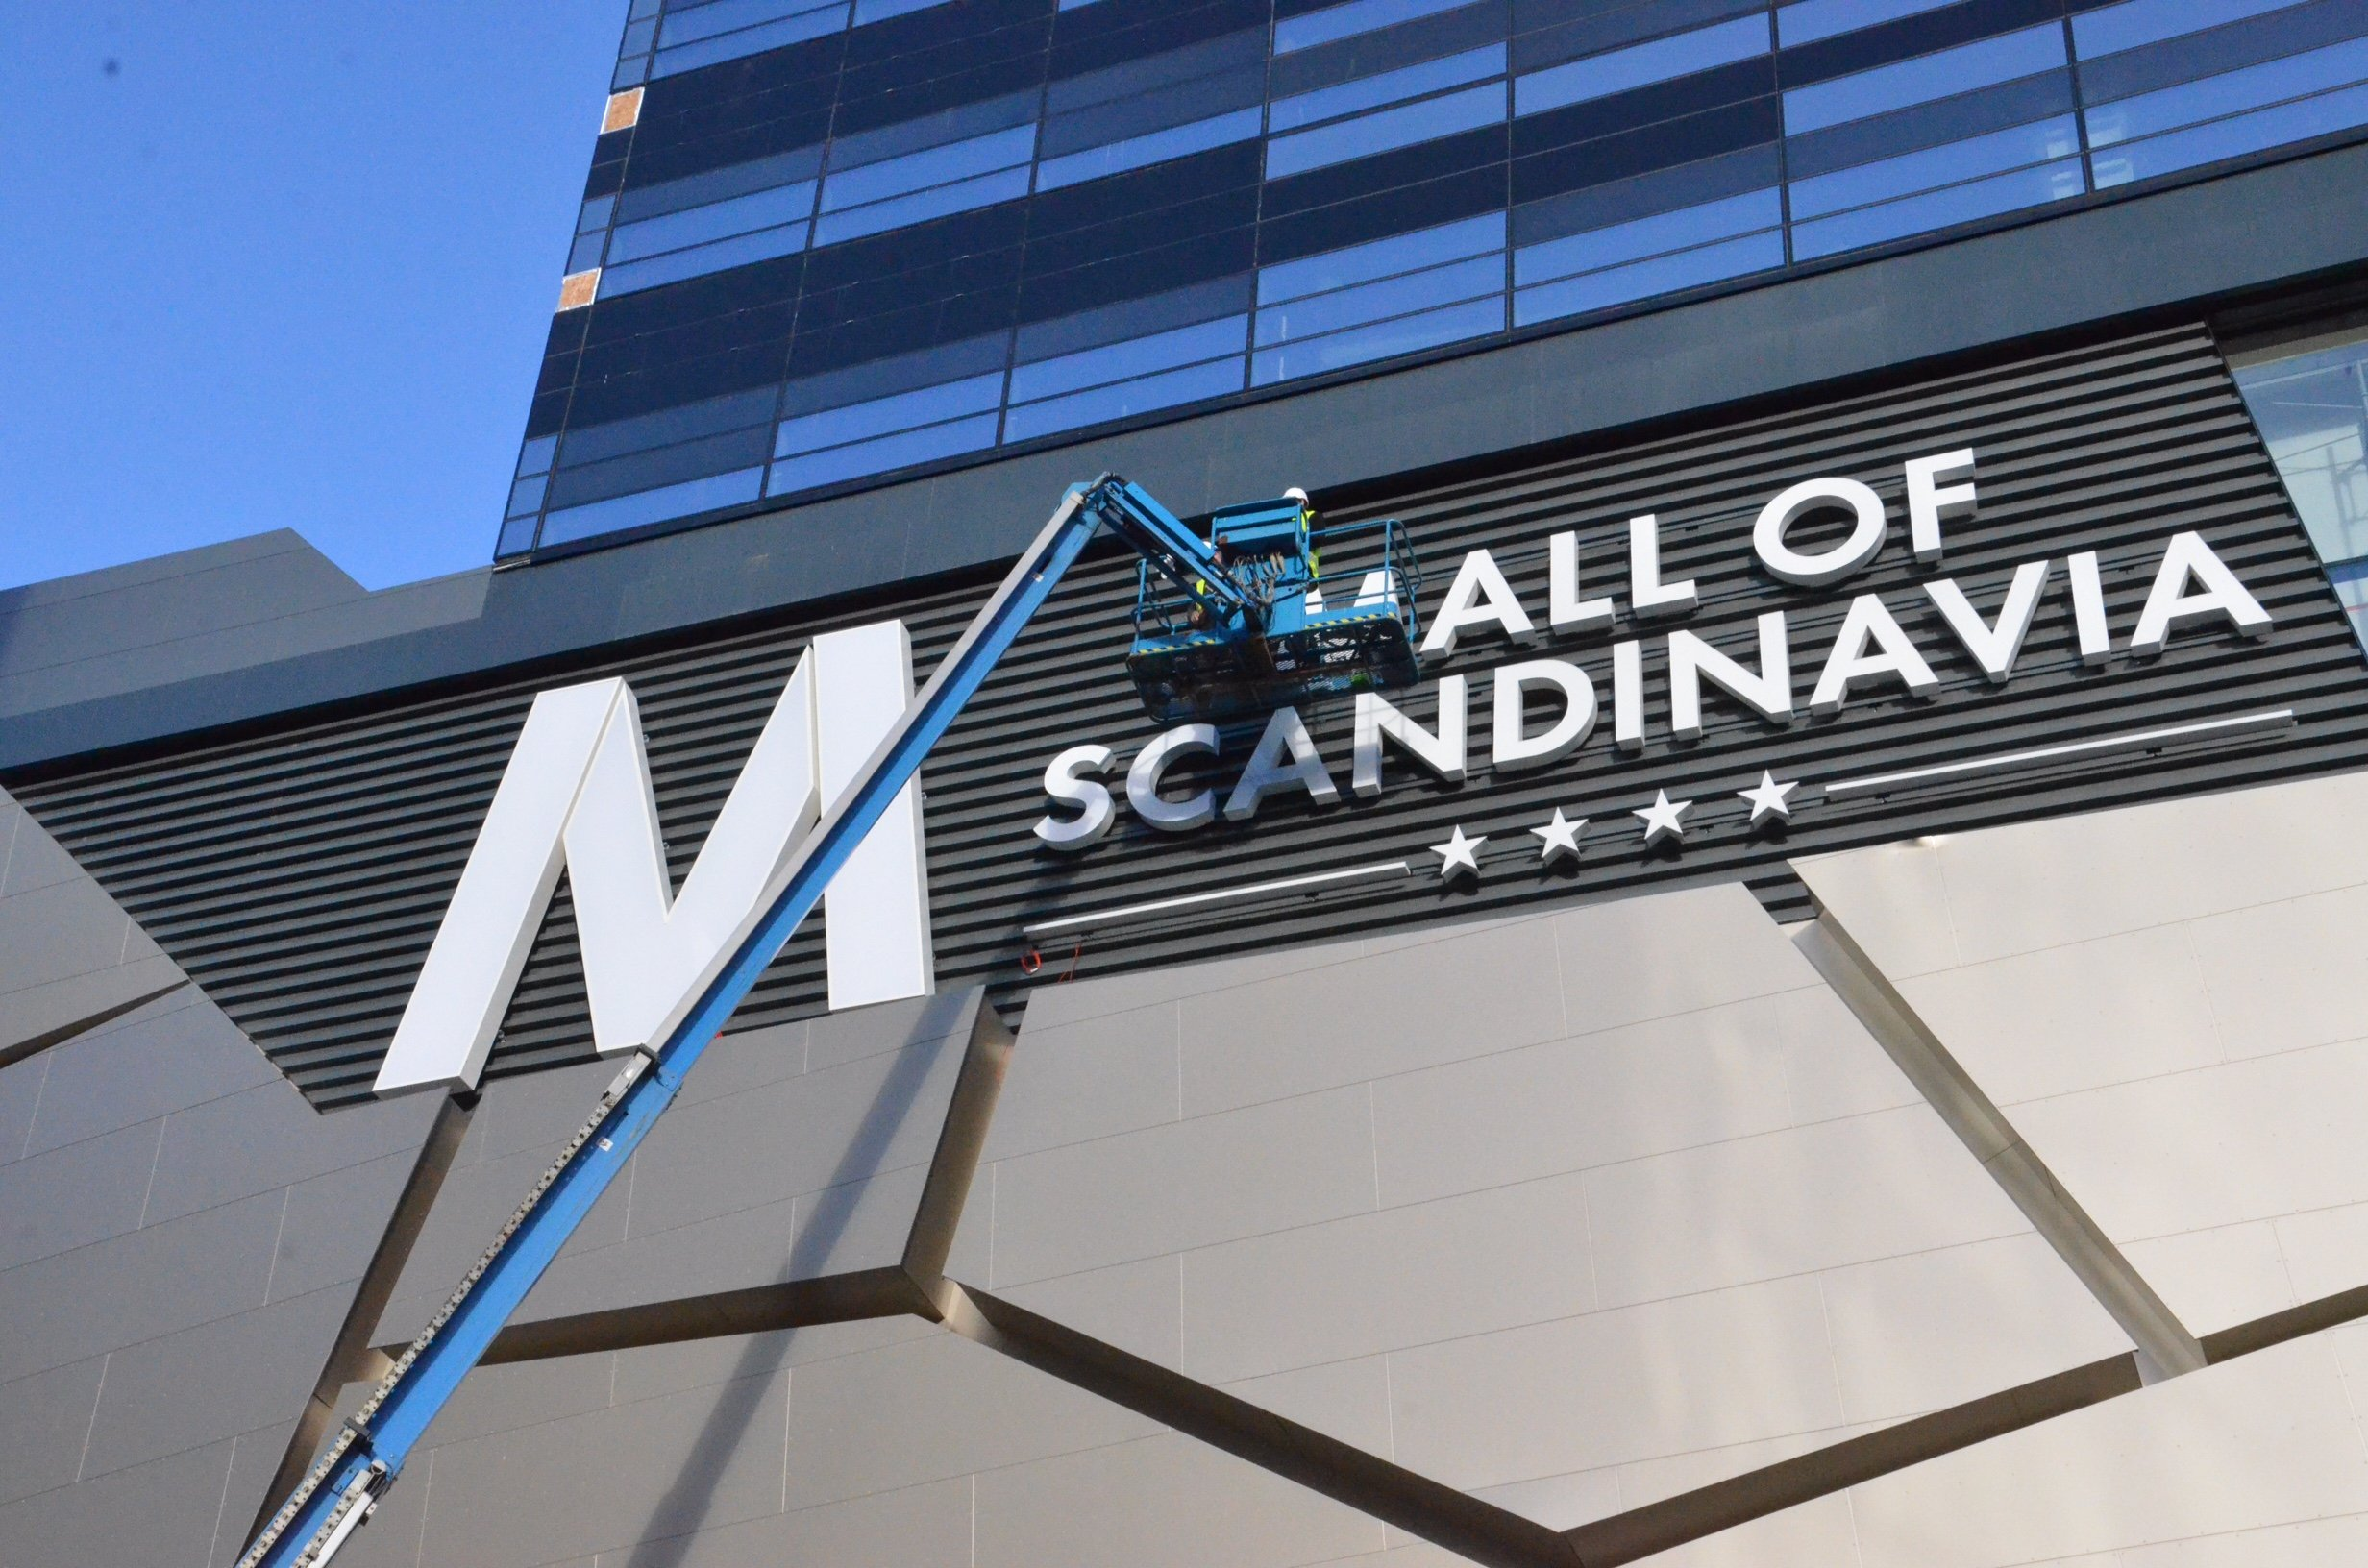 Skyltning Mall of Scandinavia